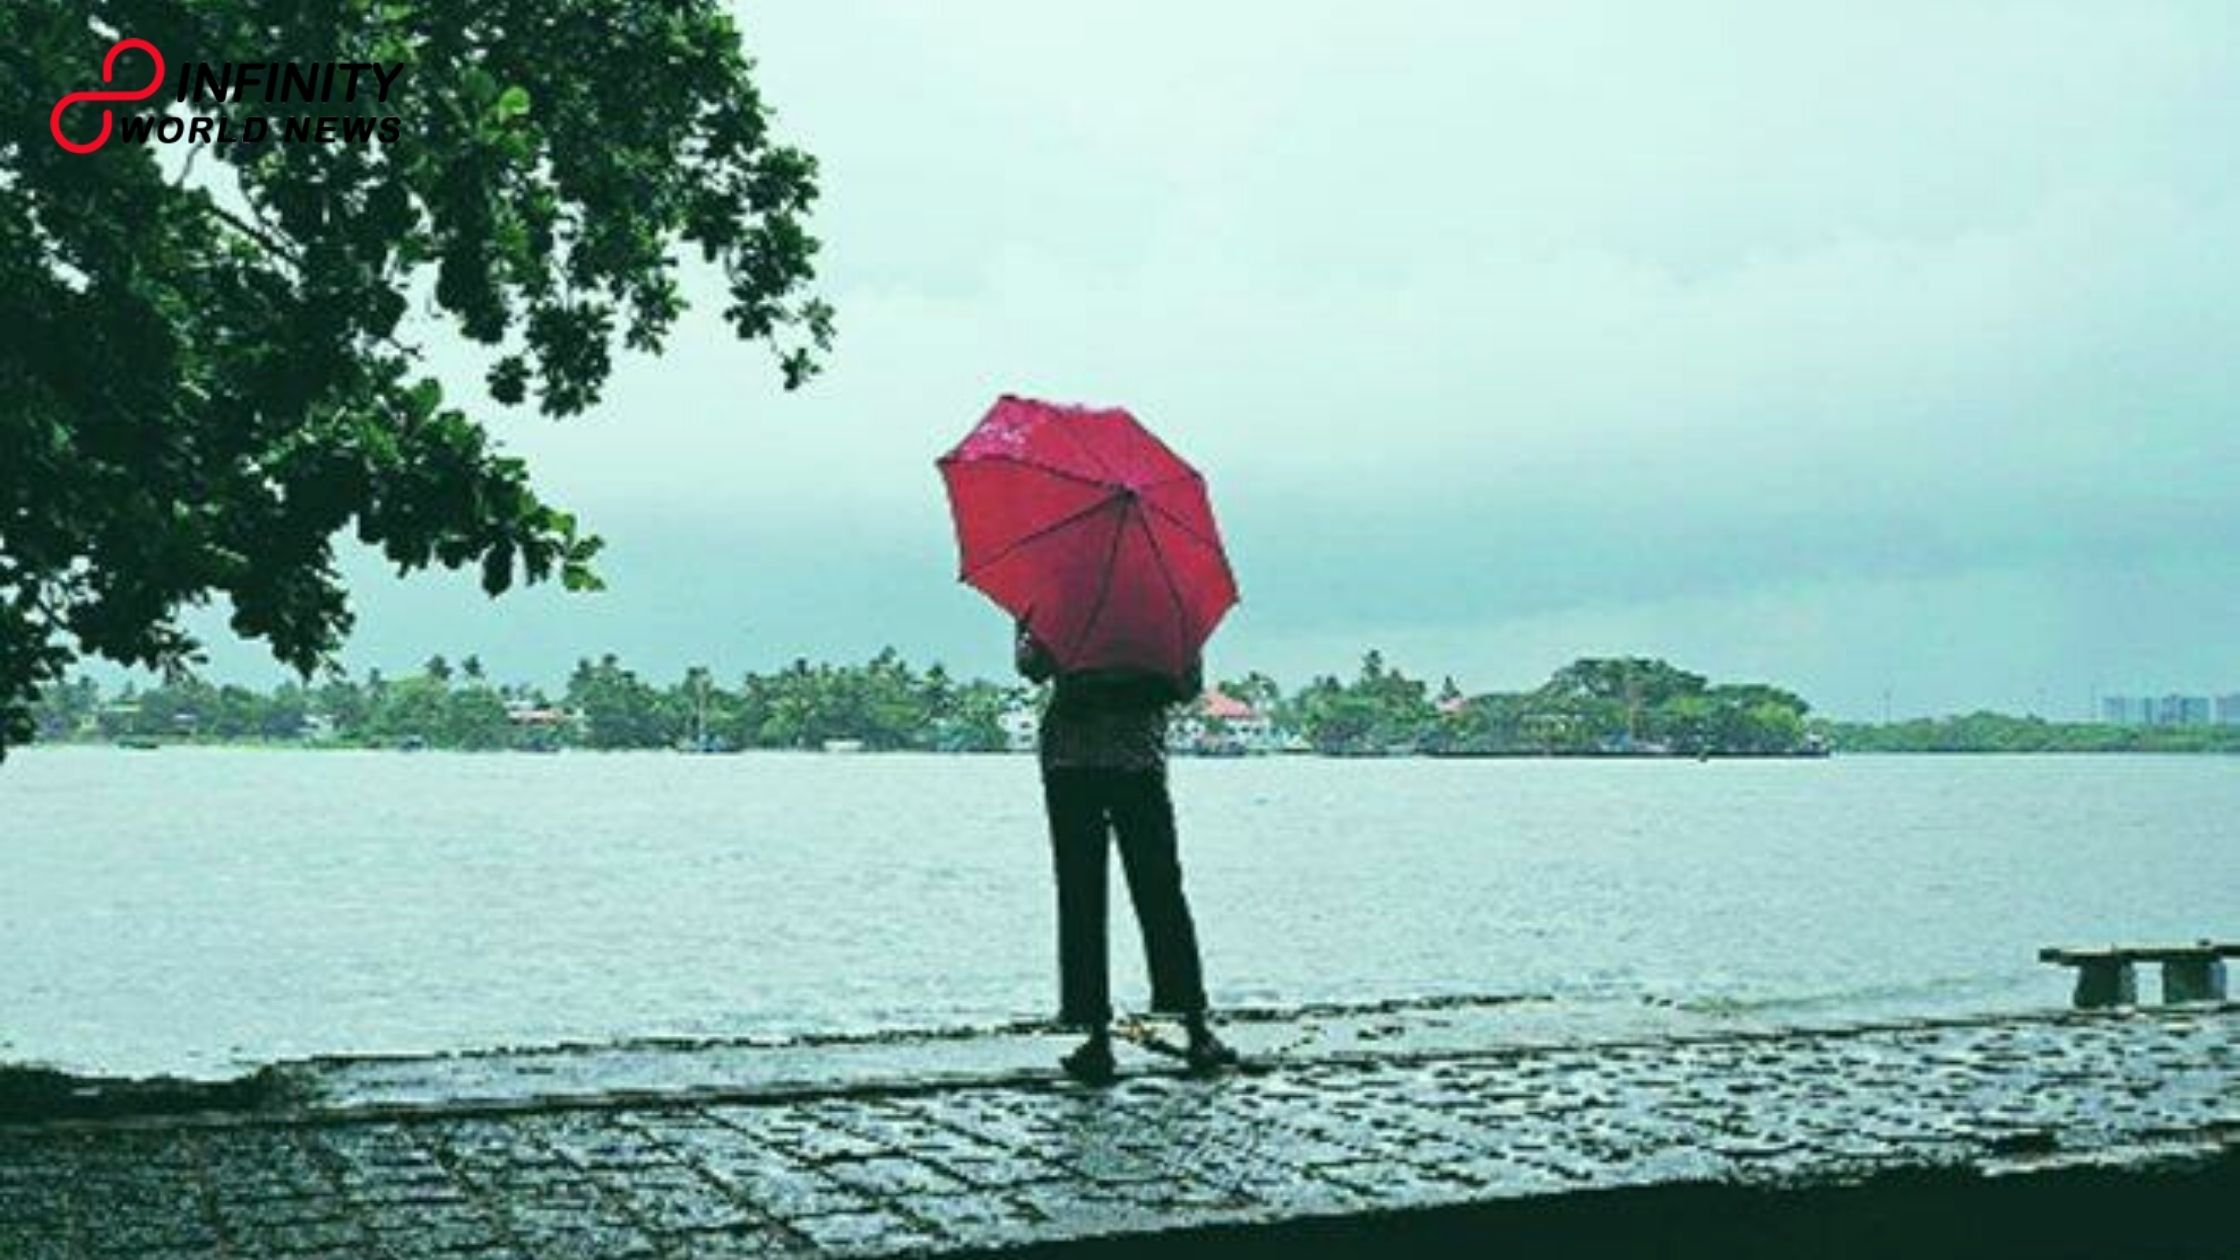 IMD's climate estimate raised expectation. However, Delhi stayed dry; weighty downpour cautioning for NW India remains